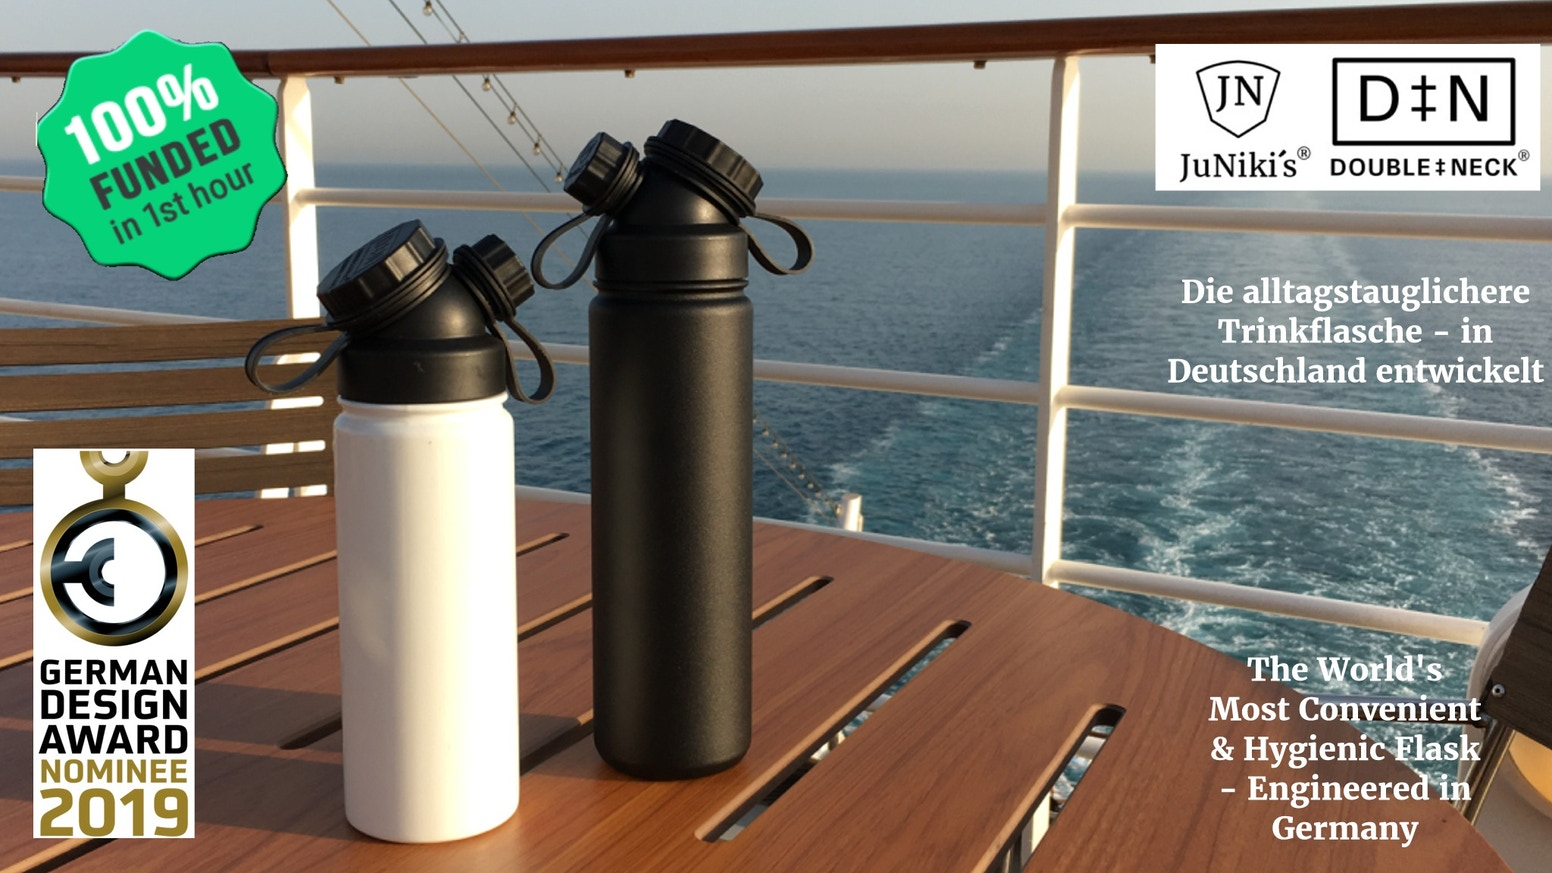 Die durchdachte, isolierte Trinkflasche für den täglichen Einsatz - The well thought through insulated drinking bottle for daily use